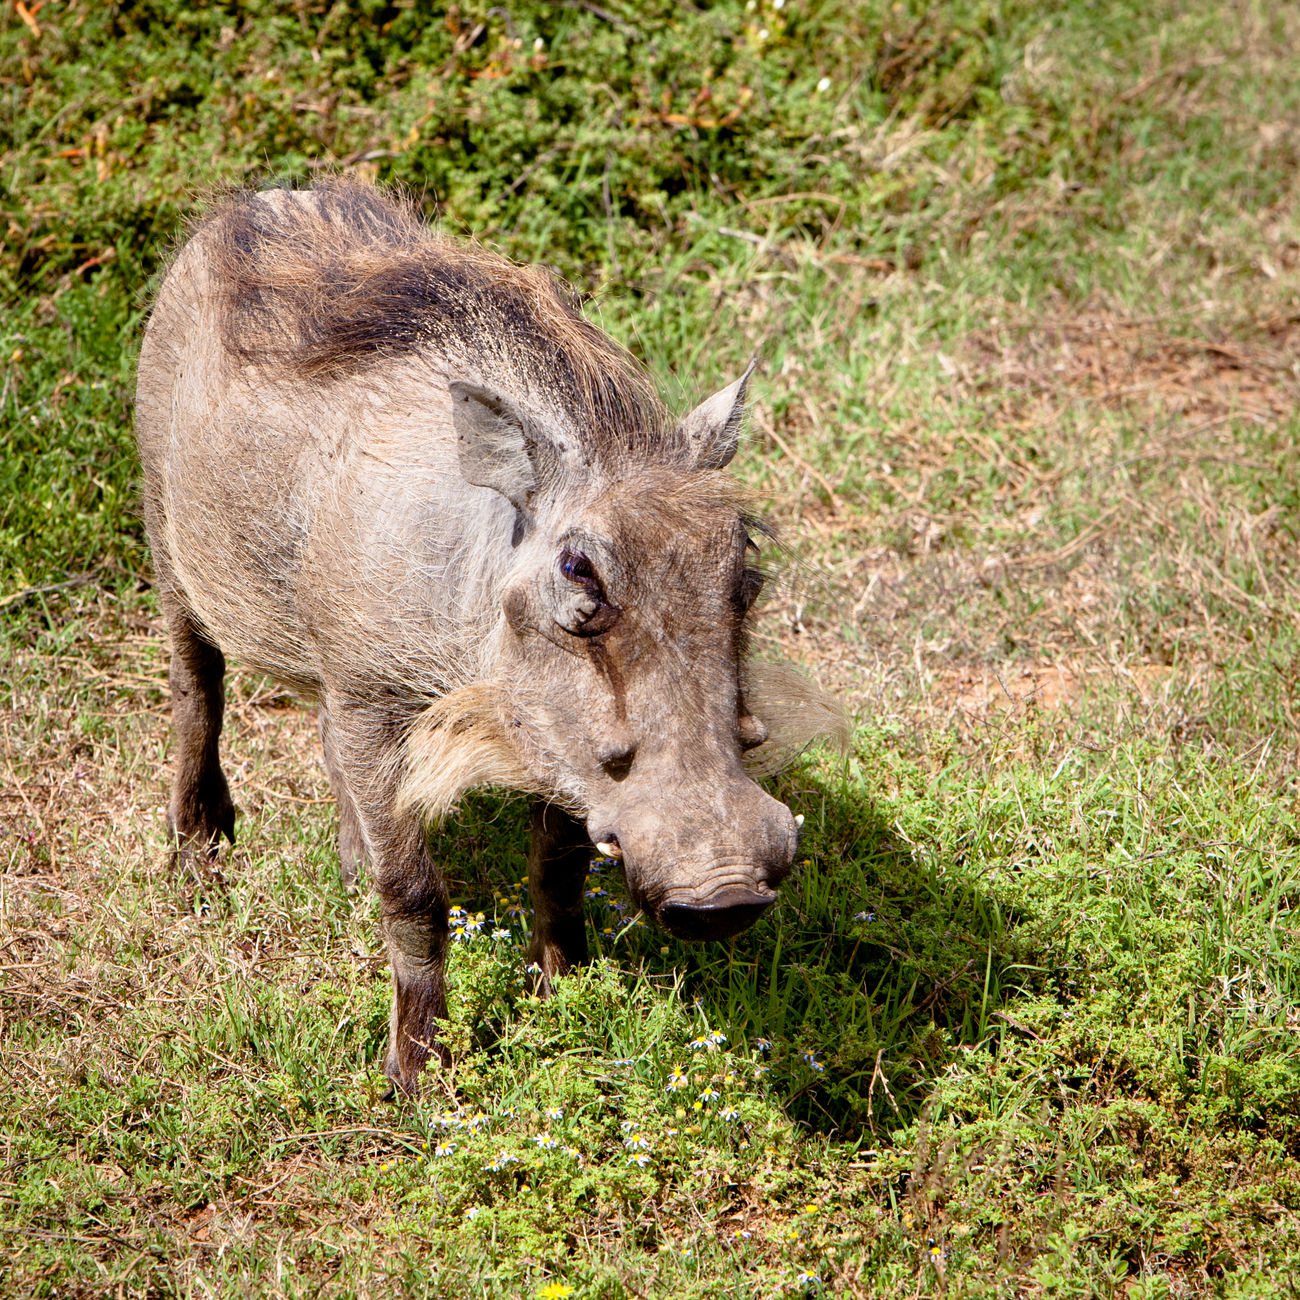 Warthog South Africa Animal Themes Animal Wildlife Animals In The Wild Close-up Day Eastern Cape Field Full Length Grass Mammal Nature No People One Animal Outdoors Pig Safari Safari Animals South Africa Standing Warthog